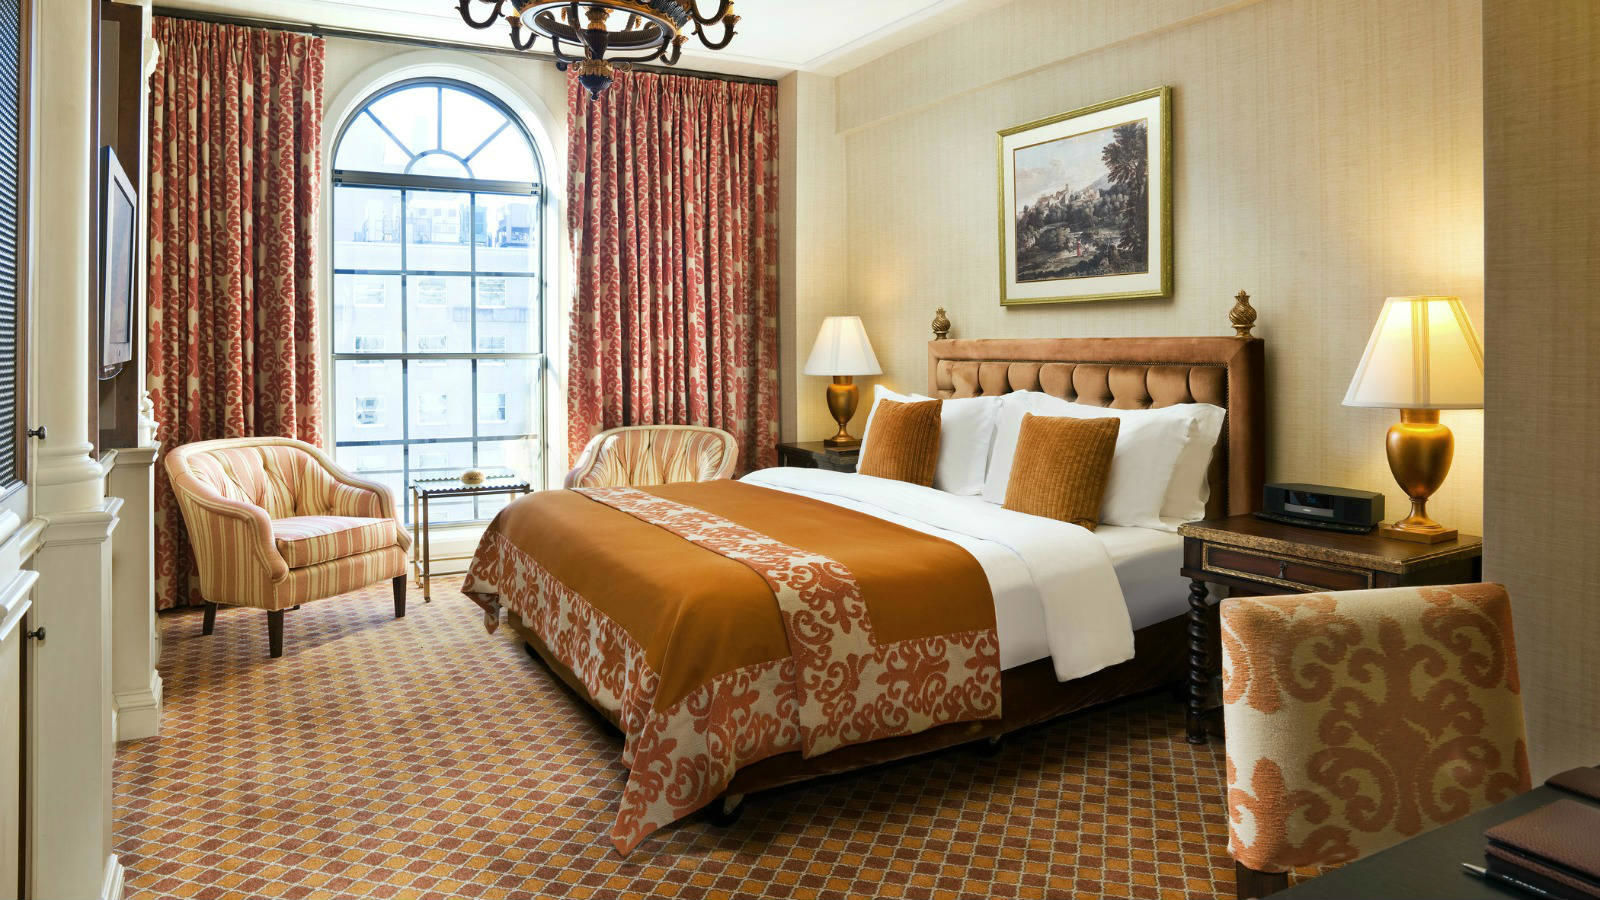 The St. Regis Washington, D.C. - Deluxe Guest Room